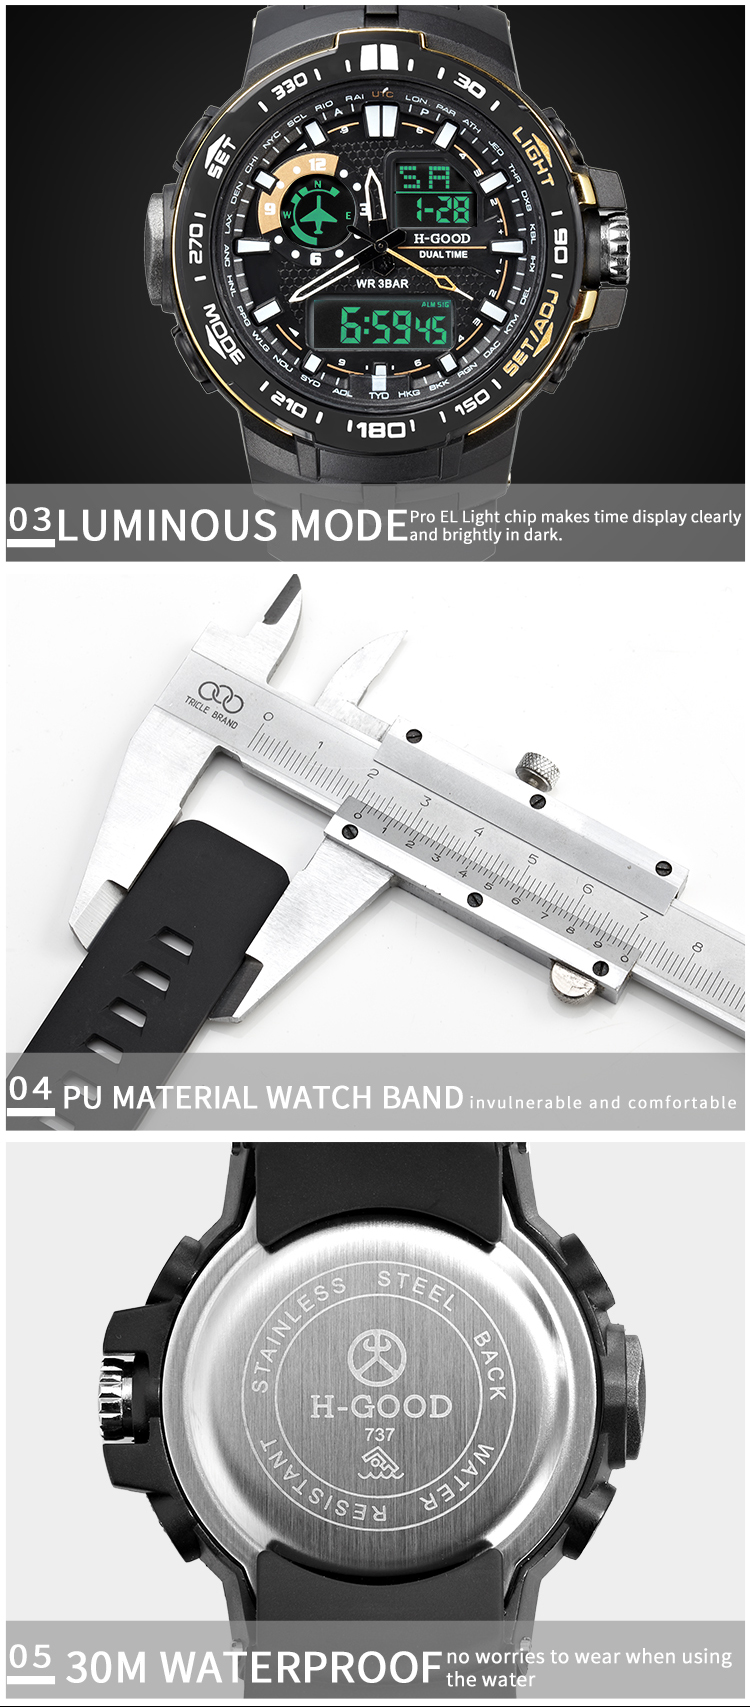 2019 Hot selling stainless steel buckle watches PU band wrist low price H-Good 737